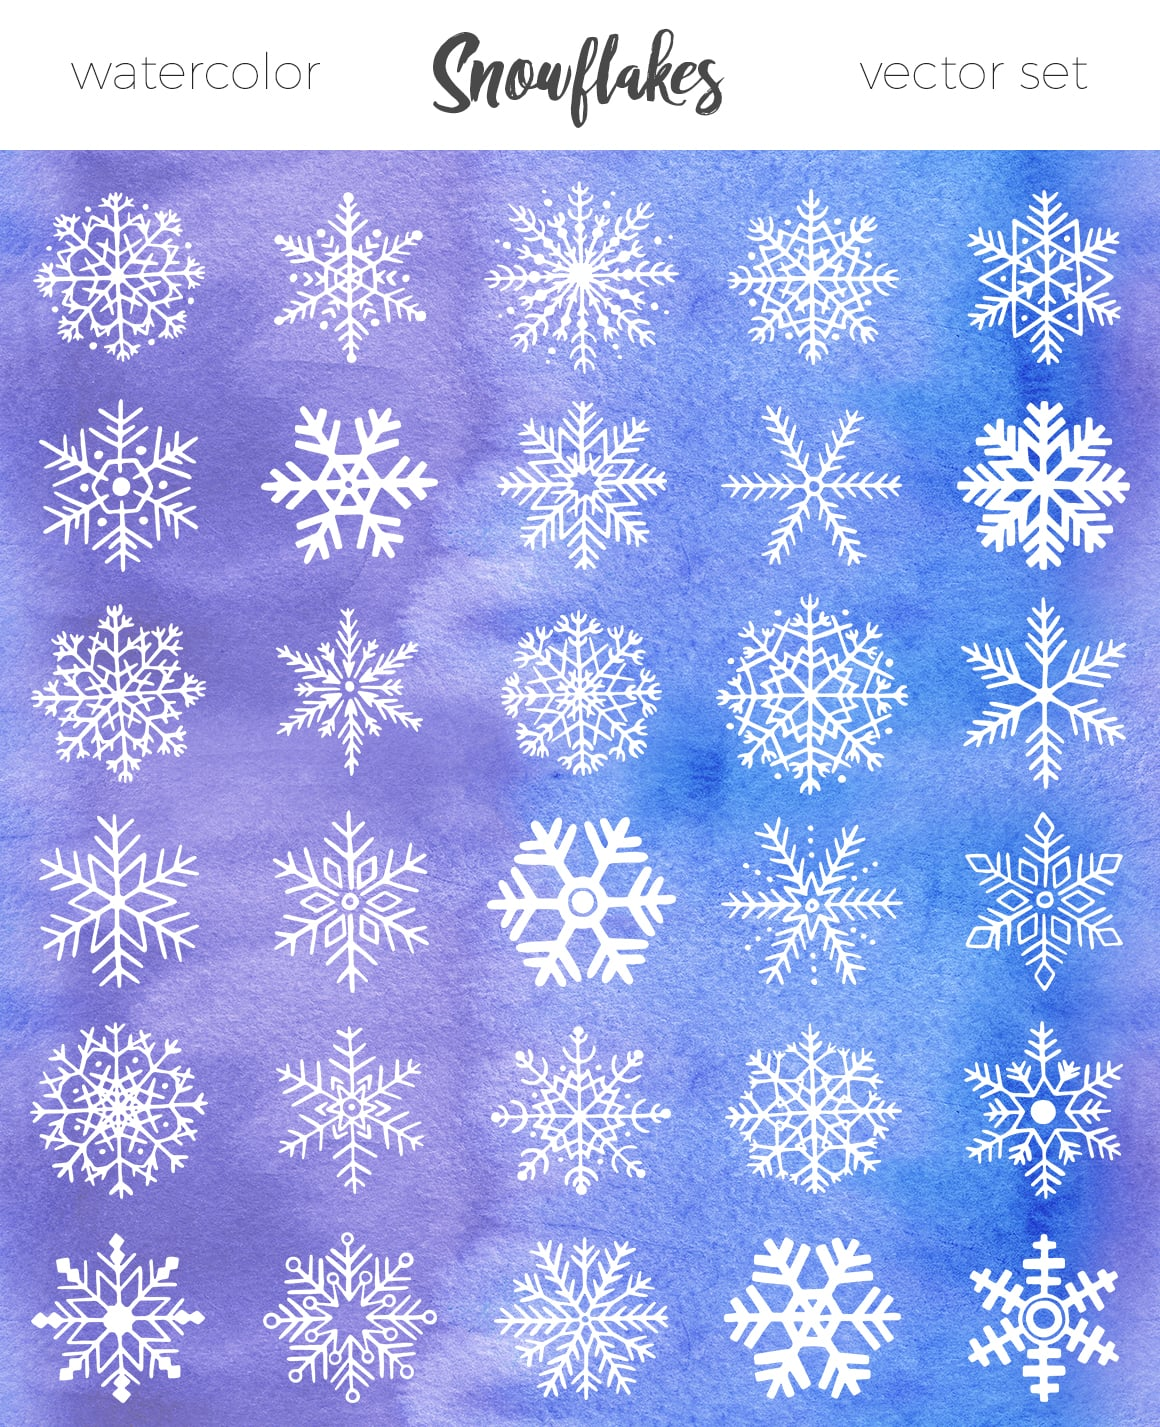 30 unique hand drawn snowflakes